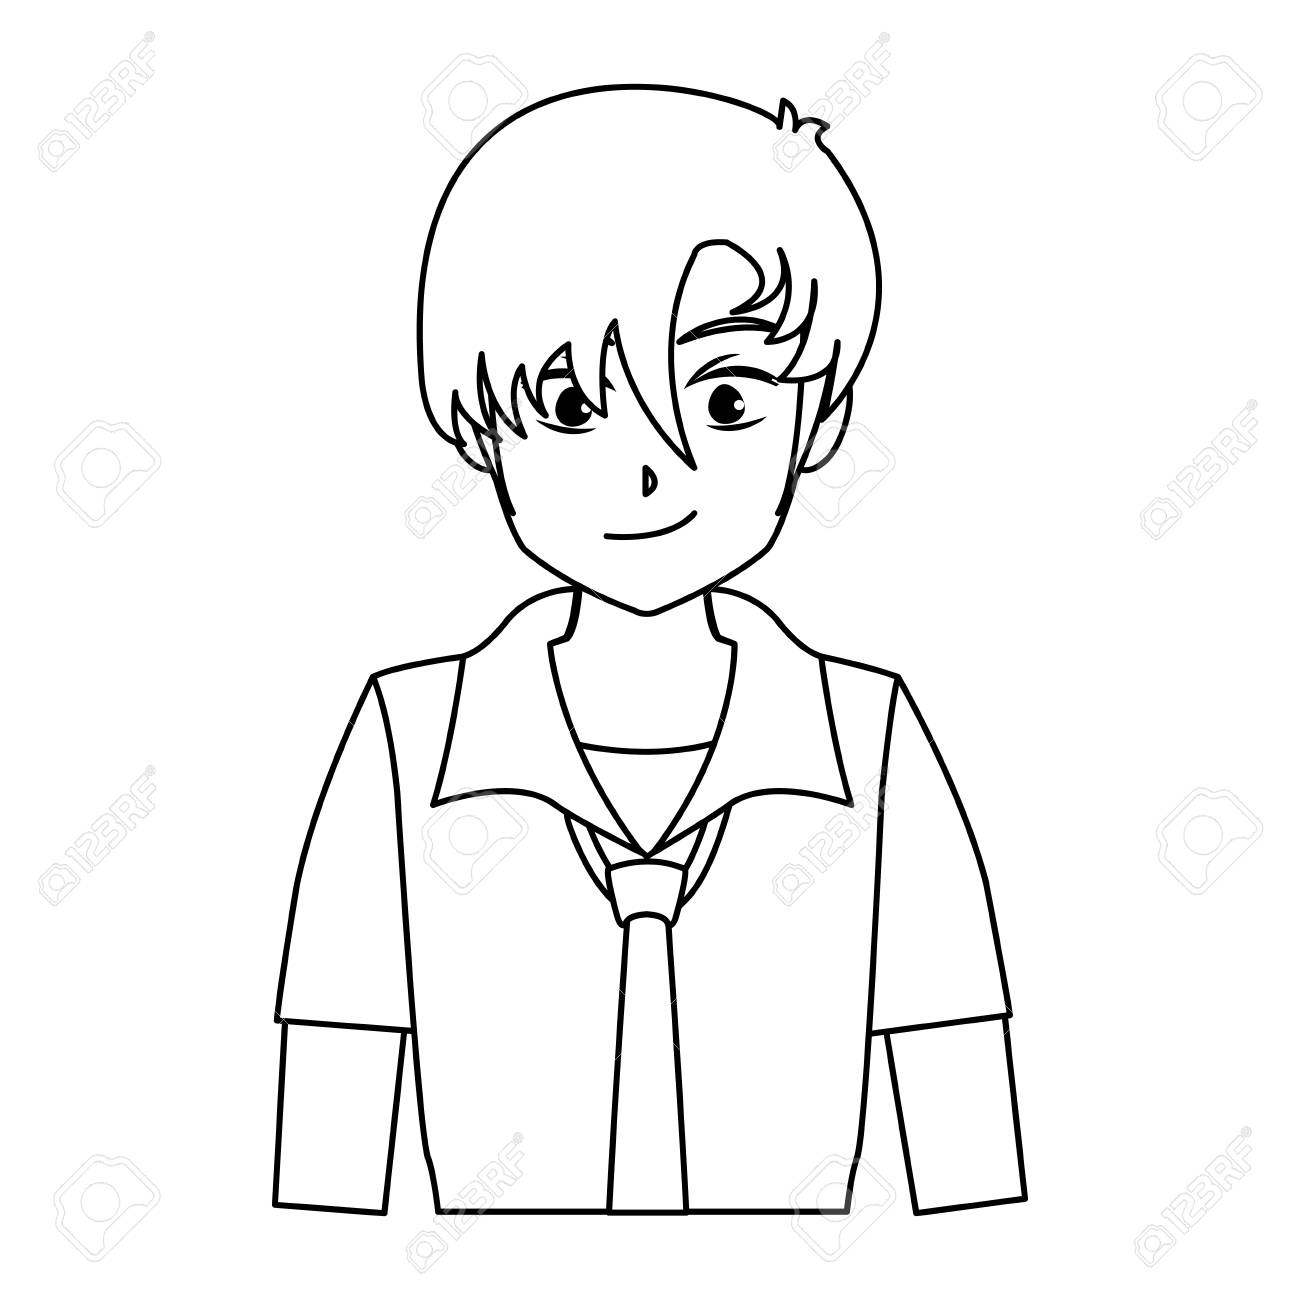 Character boy anime teenager outline vector illustration